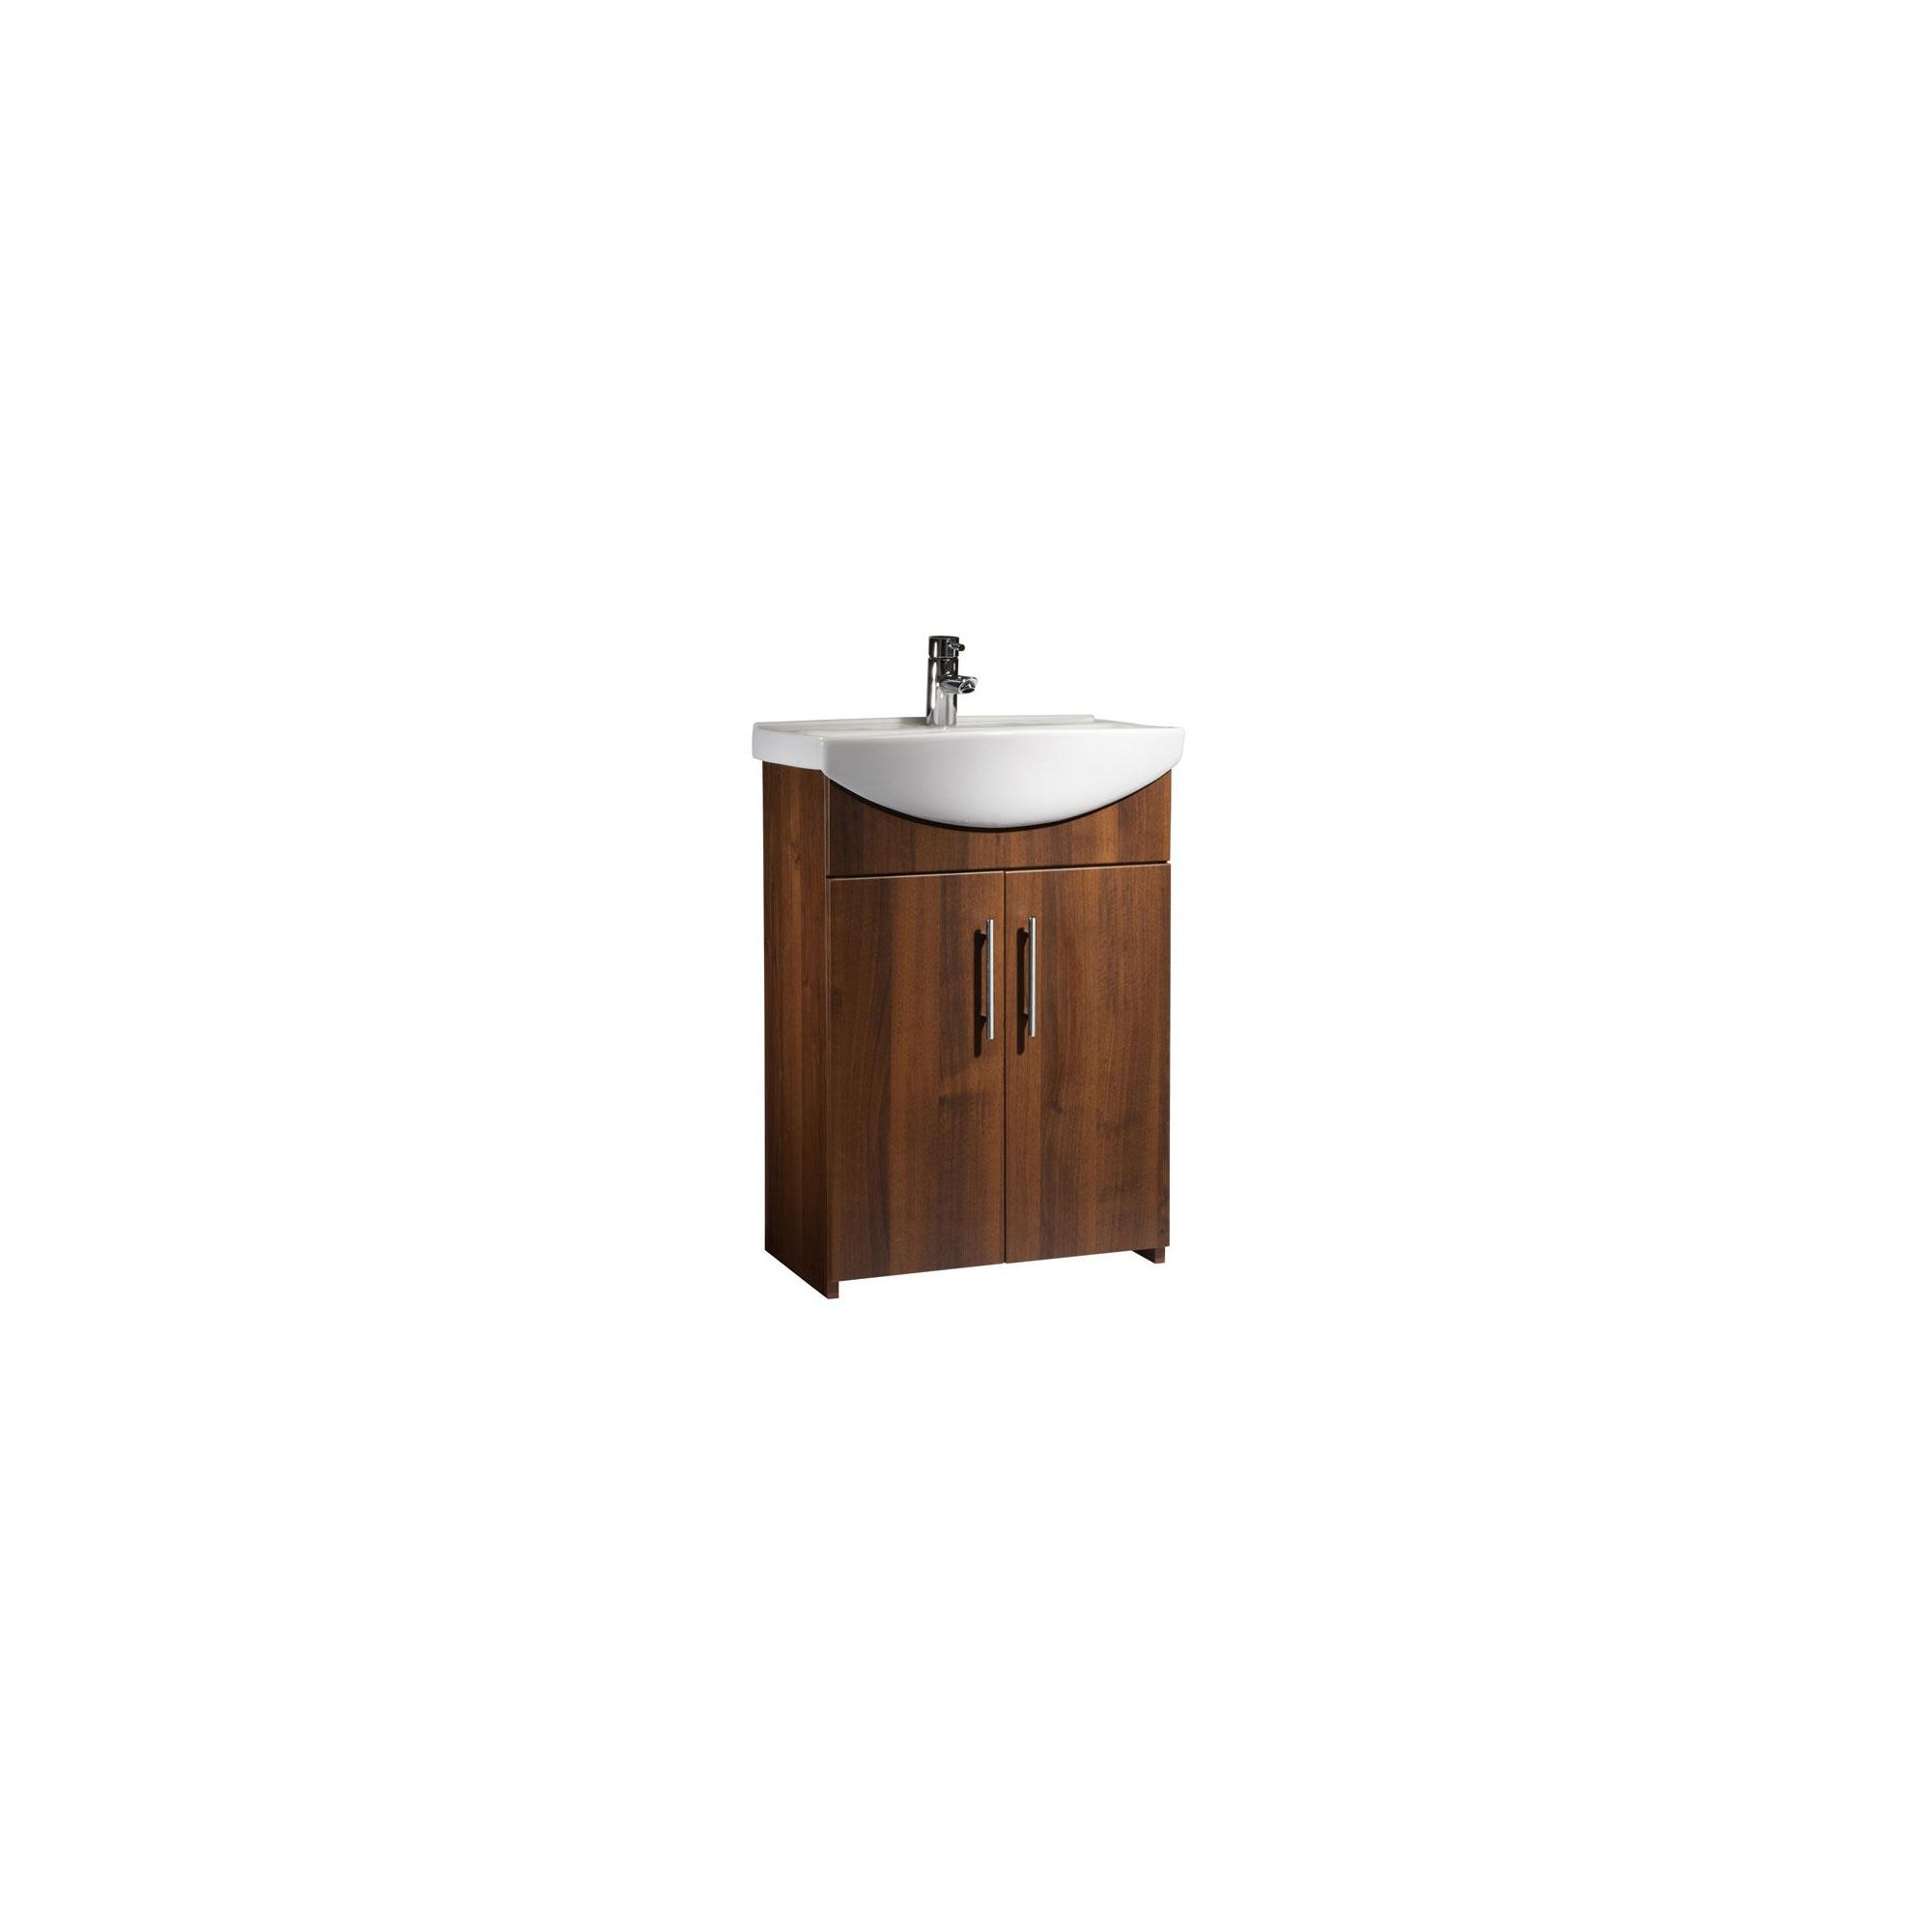 Tavistock Opal Walnut Floor Standing Cabinet and Basin - 1 Tap Hole - 600mm Wide